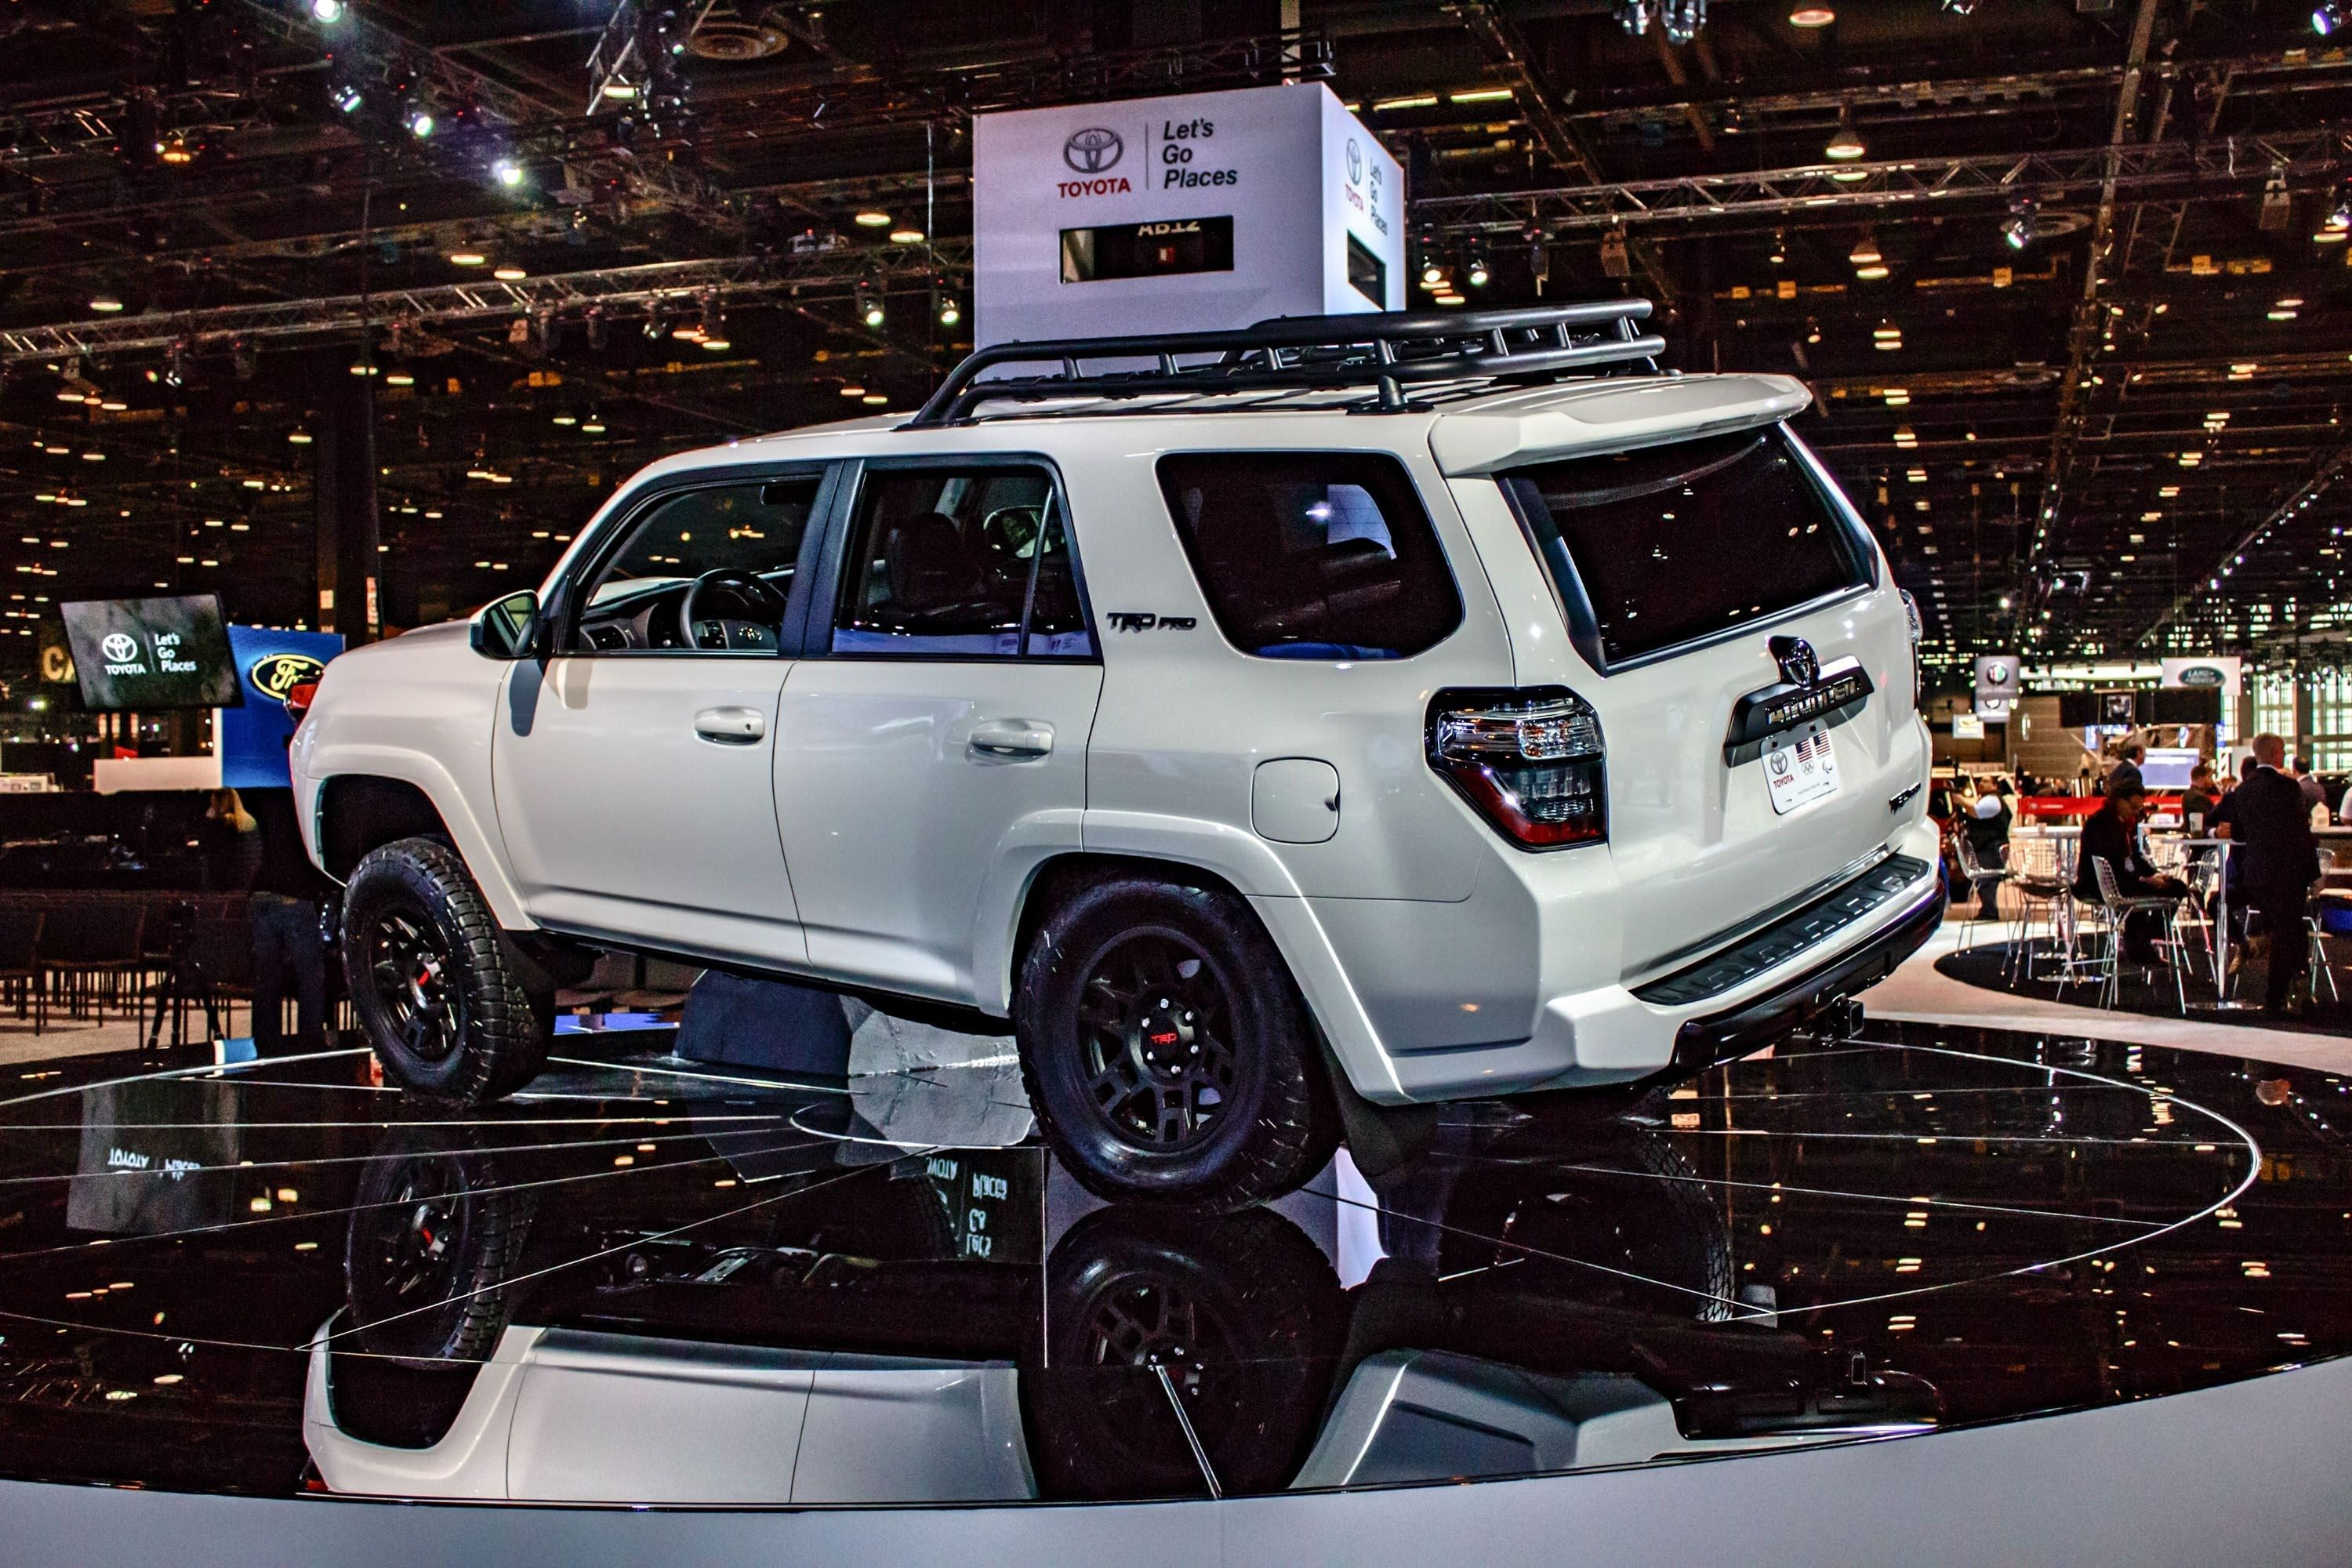 Toyota 4runner 2020 Toyota 4runner 2020 2020 Toyota 4runner Redesign Picture Release Date And Review Toyota 4runner 4runner Toyota